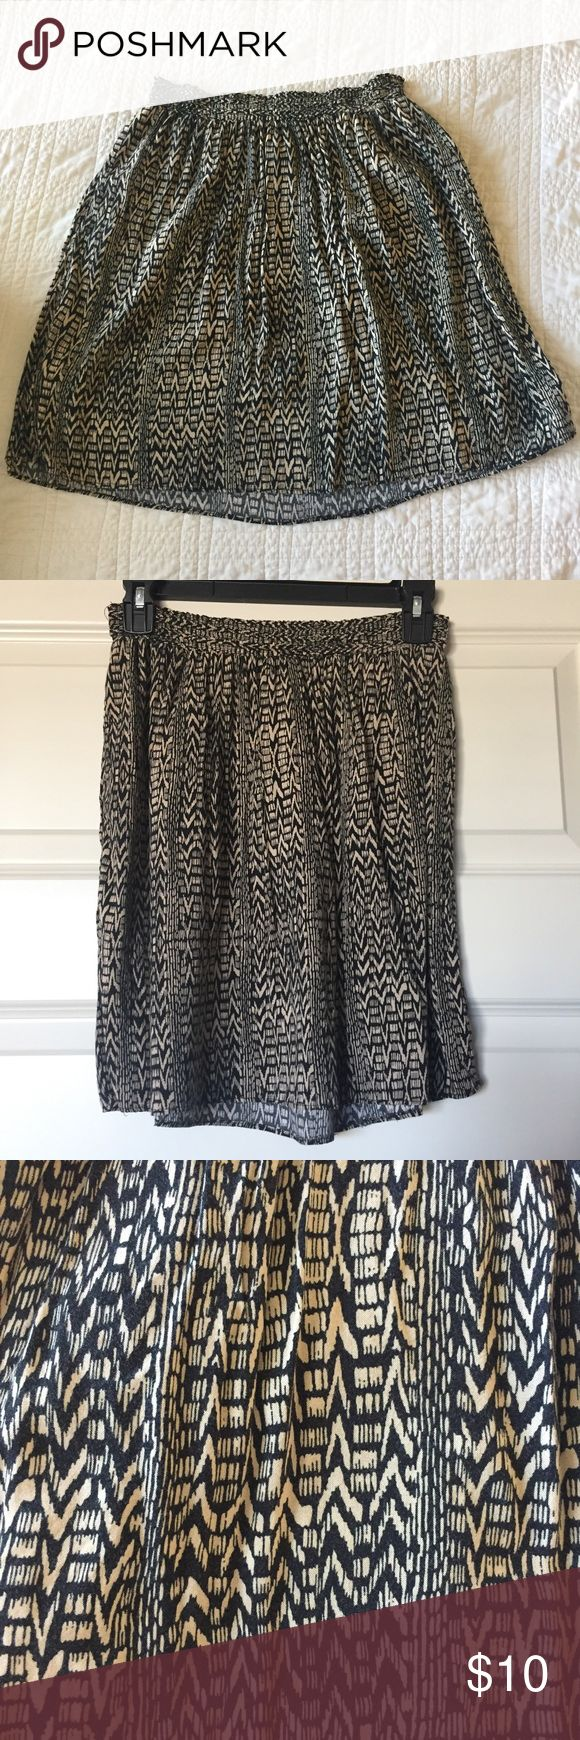 Tribal Print Skirt Brown and black tribal print skirt with pockets. Soft flowy material and elastic waistband. Washed and worn a couple times and in great condition! Make an offer! Bundle 2 or more items and save 10% plus combined shipping! Mossimo Supply Co. Skirts